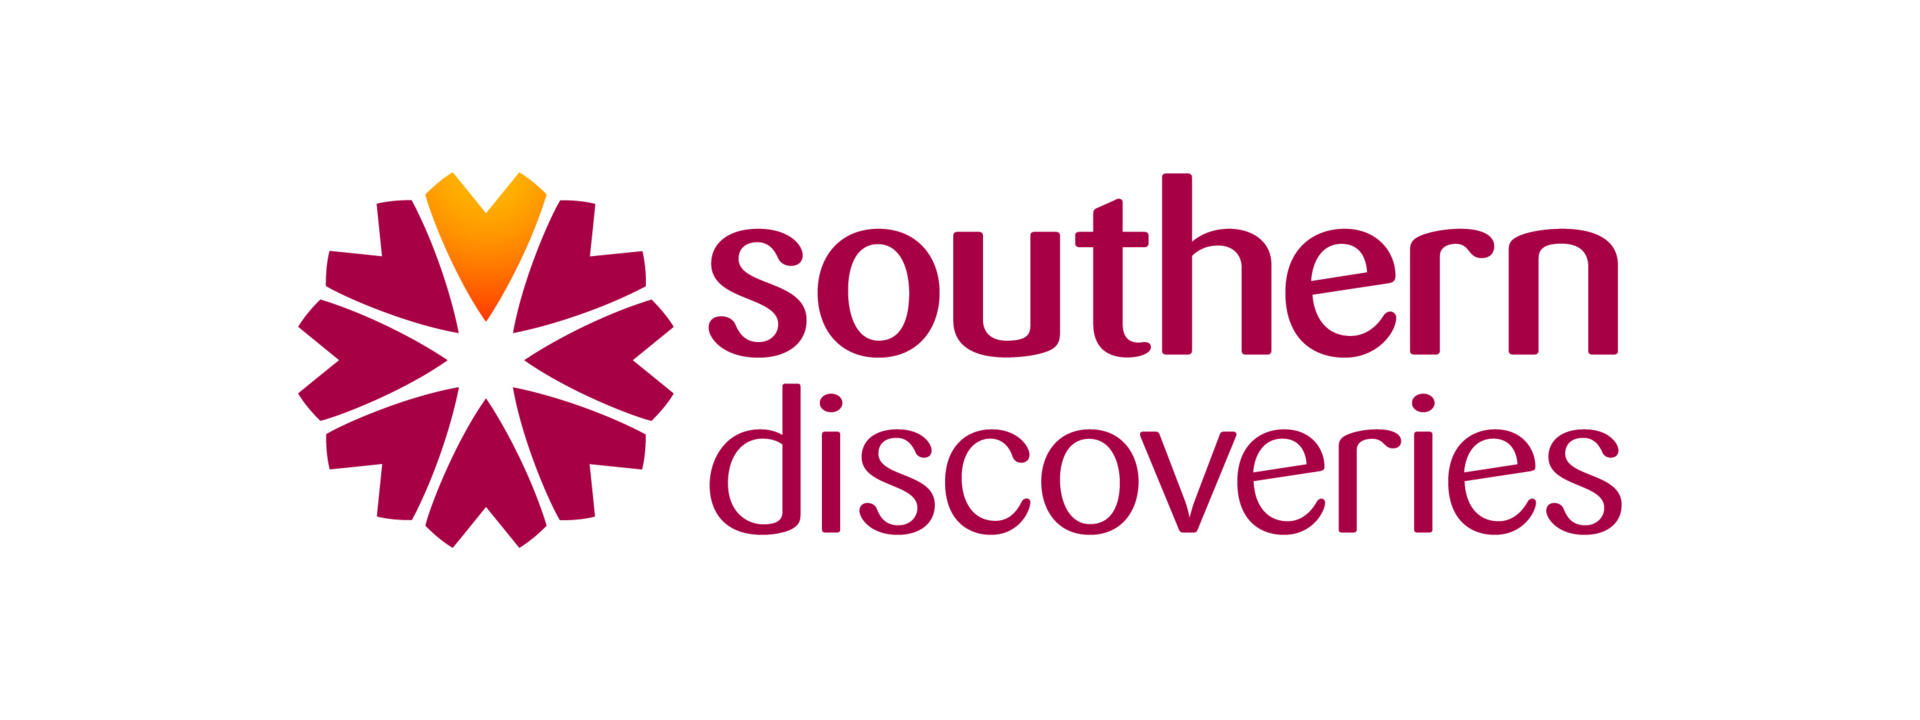 Logo: Spirit of Queenstown Scenic Cruise - Southern Discoveries